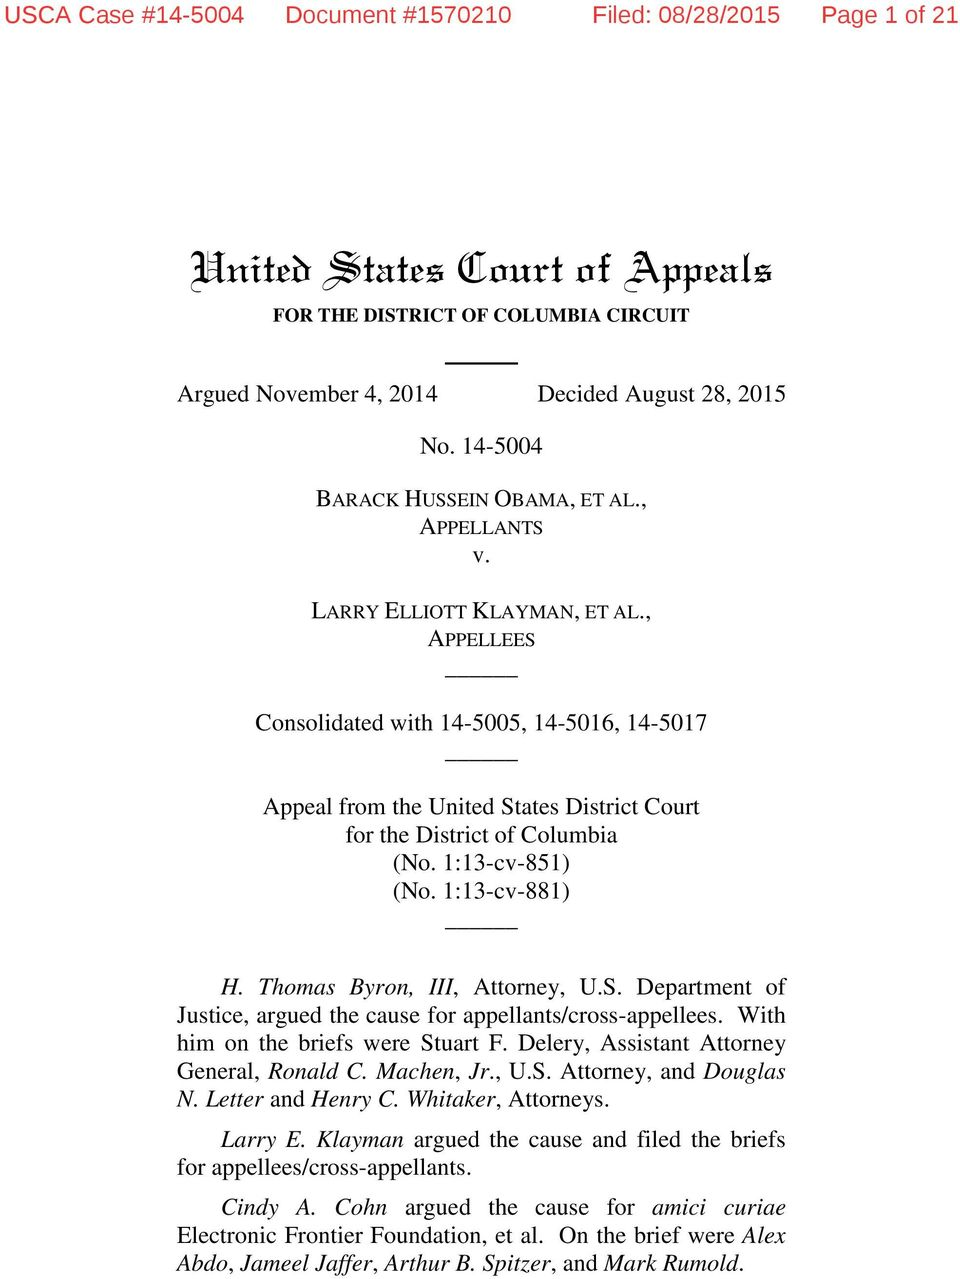 , APPELLEES Consolidated with 14-5005, 14-5016, 14-5017 Appeal from the United States District Court for the District of Columbia (No. 1:13-cv-851) (No. 1:13-cv-881) H. Thomas Byron, III, Attorney, U.